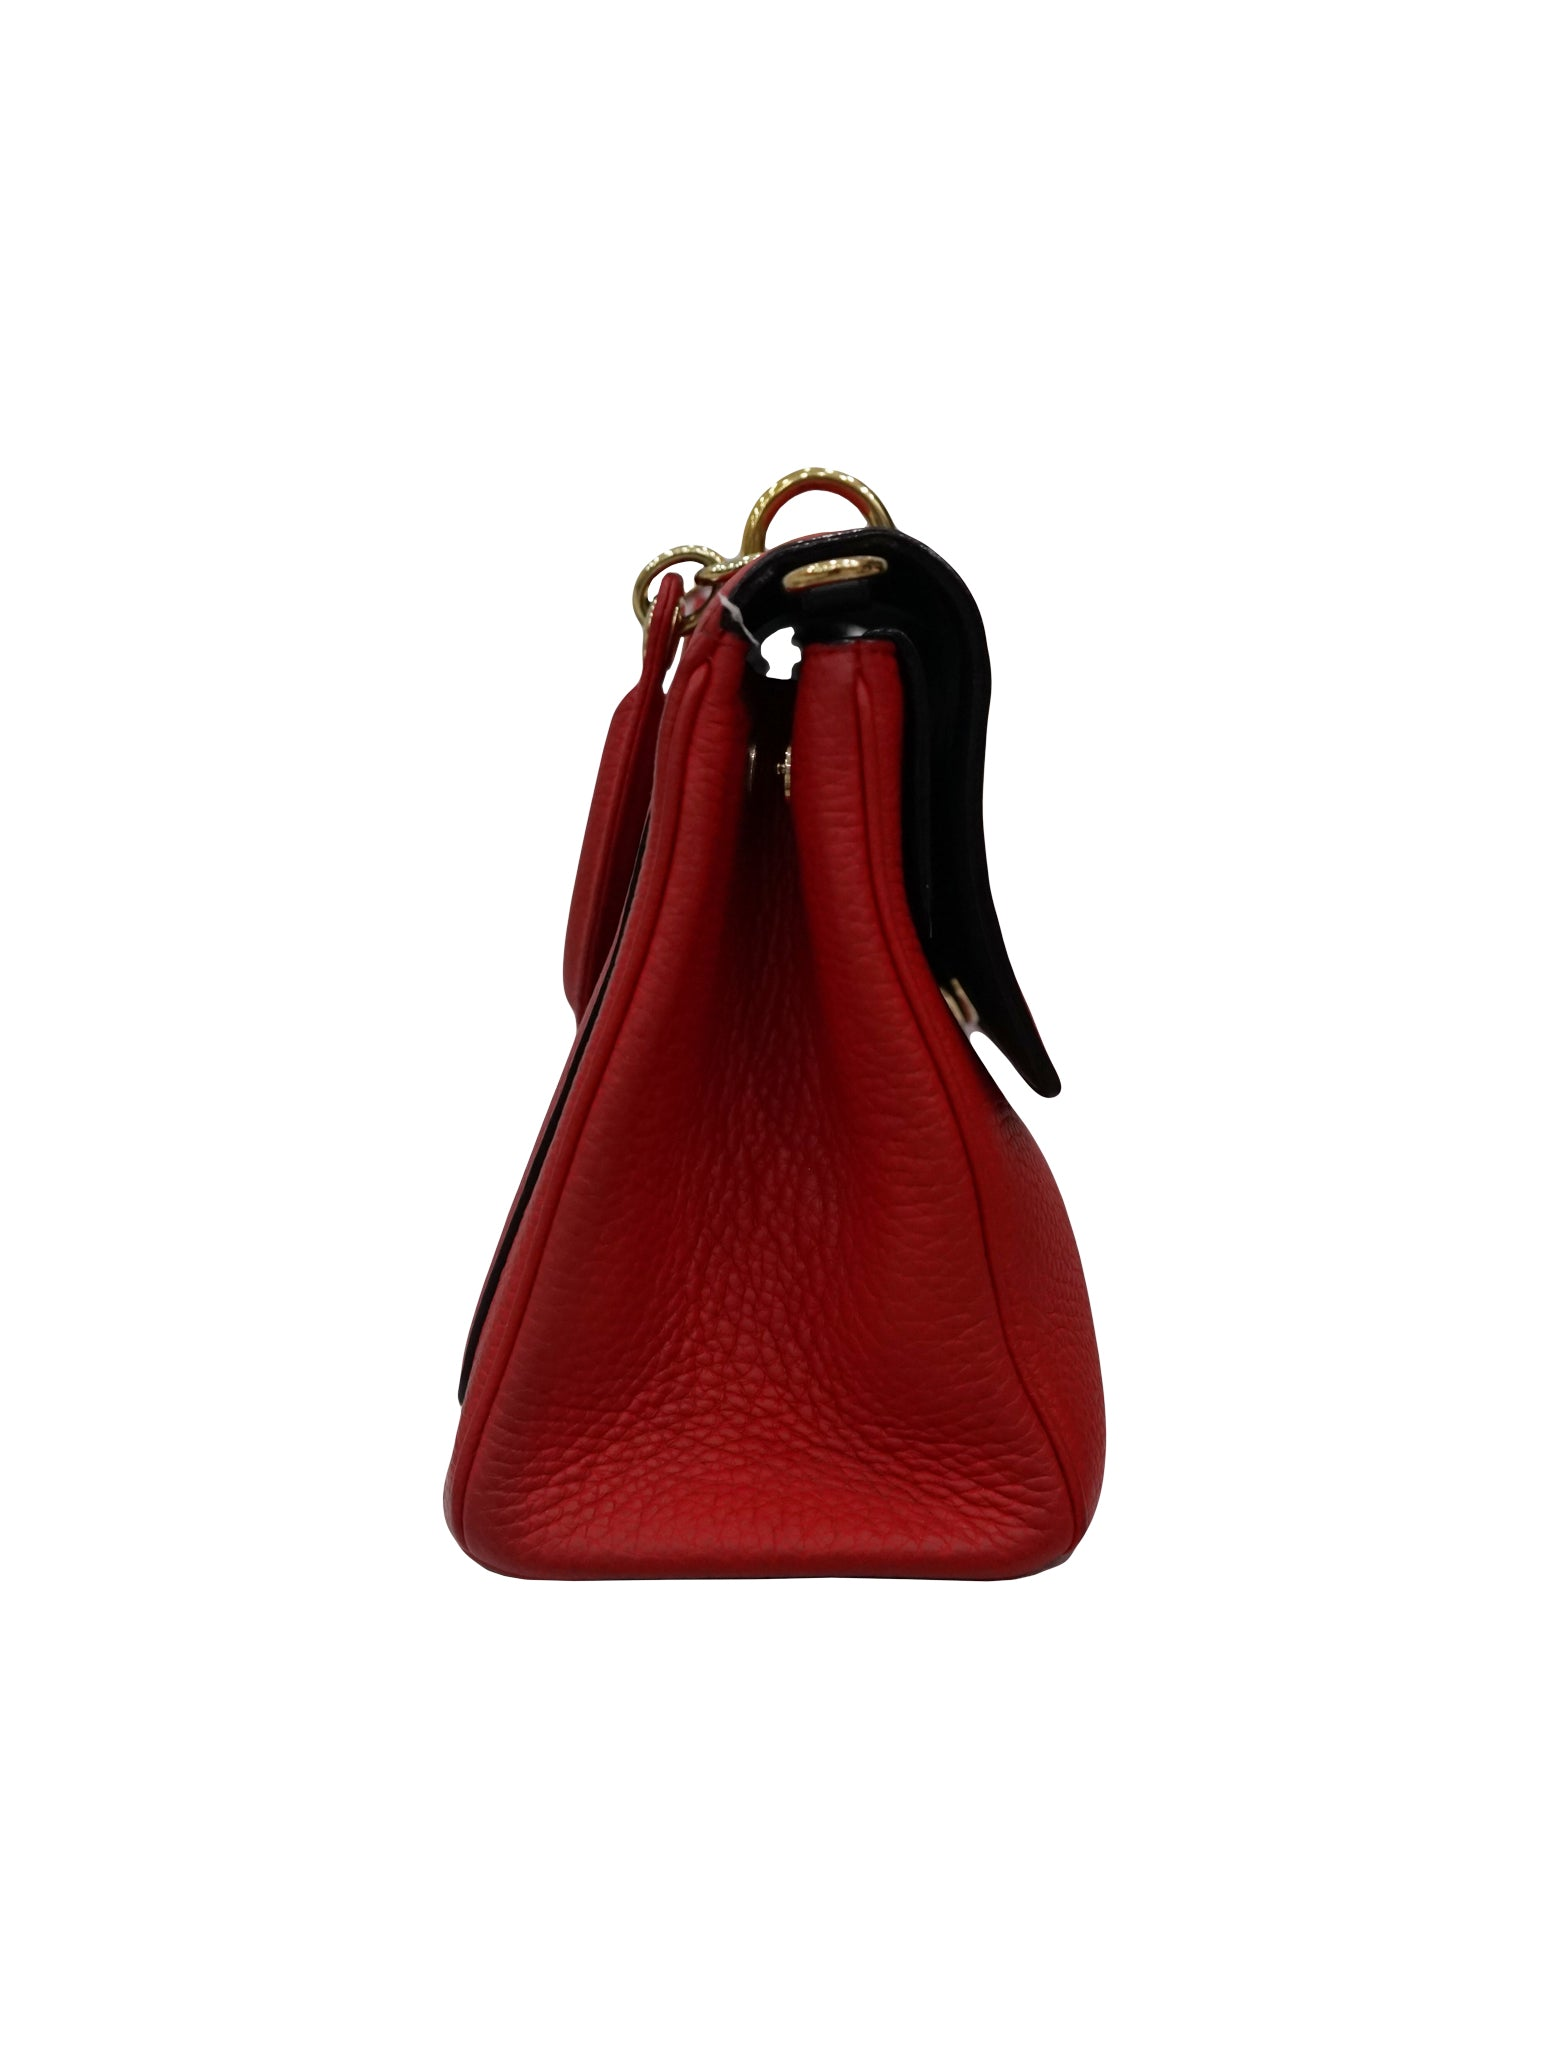 RED LEATHER SMALL BE DIOR SHOULDER BAG